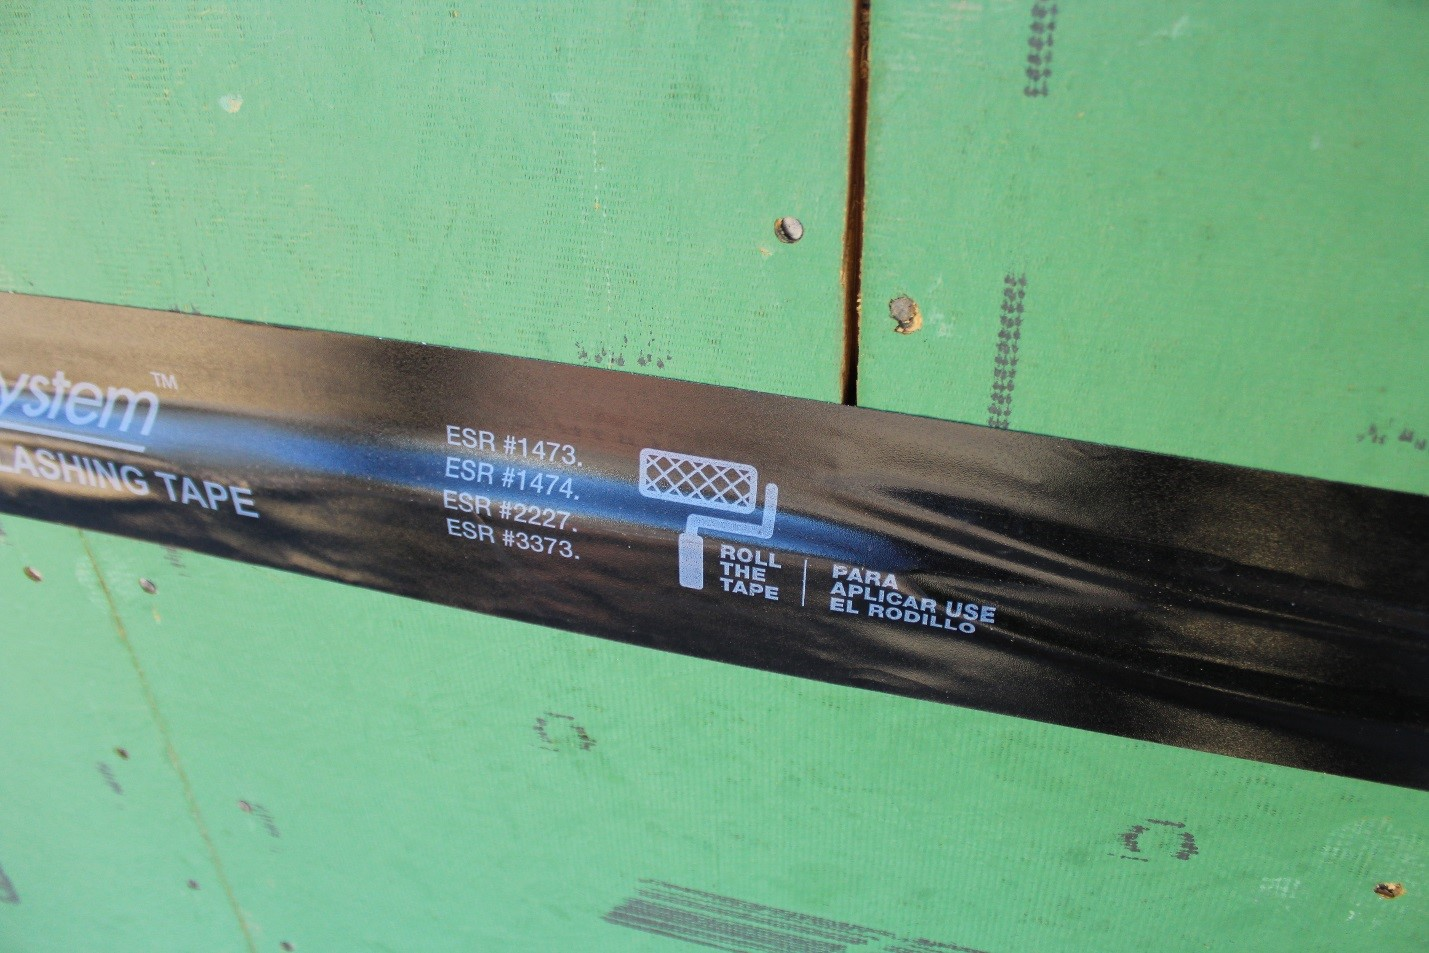 Zip System Flashing Tape With Graphic Indicating The Requirement To Roll